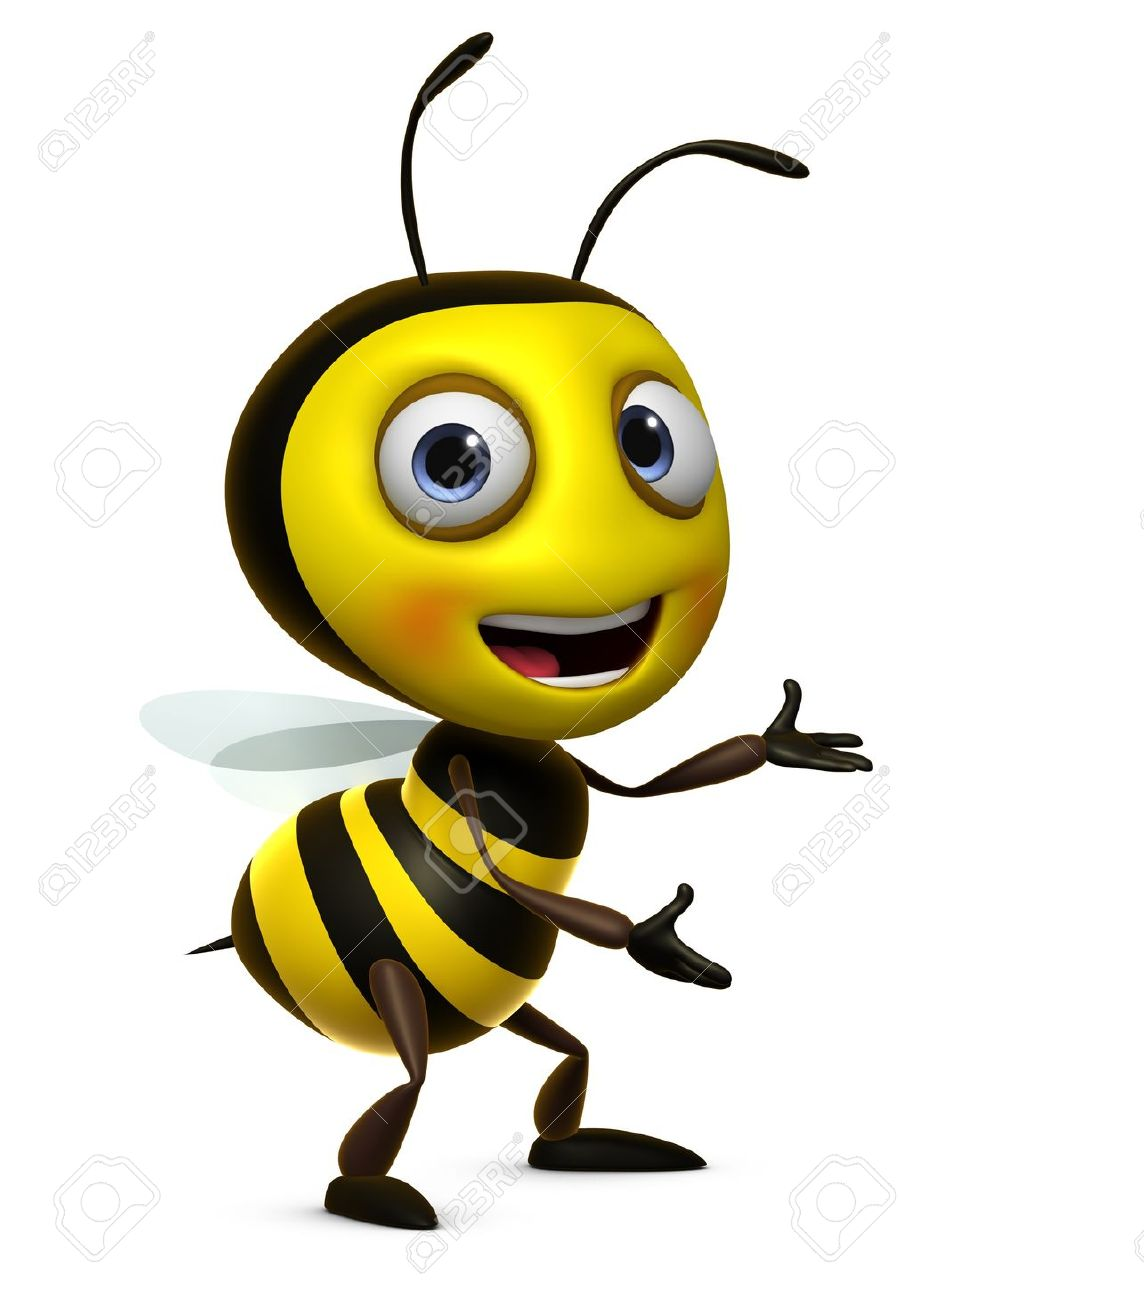 Cute animated bees